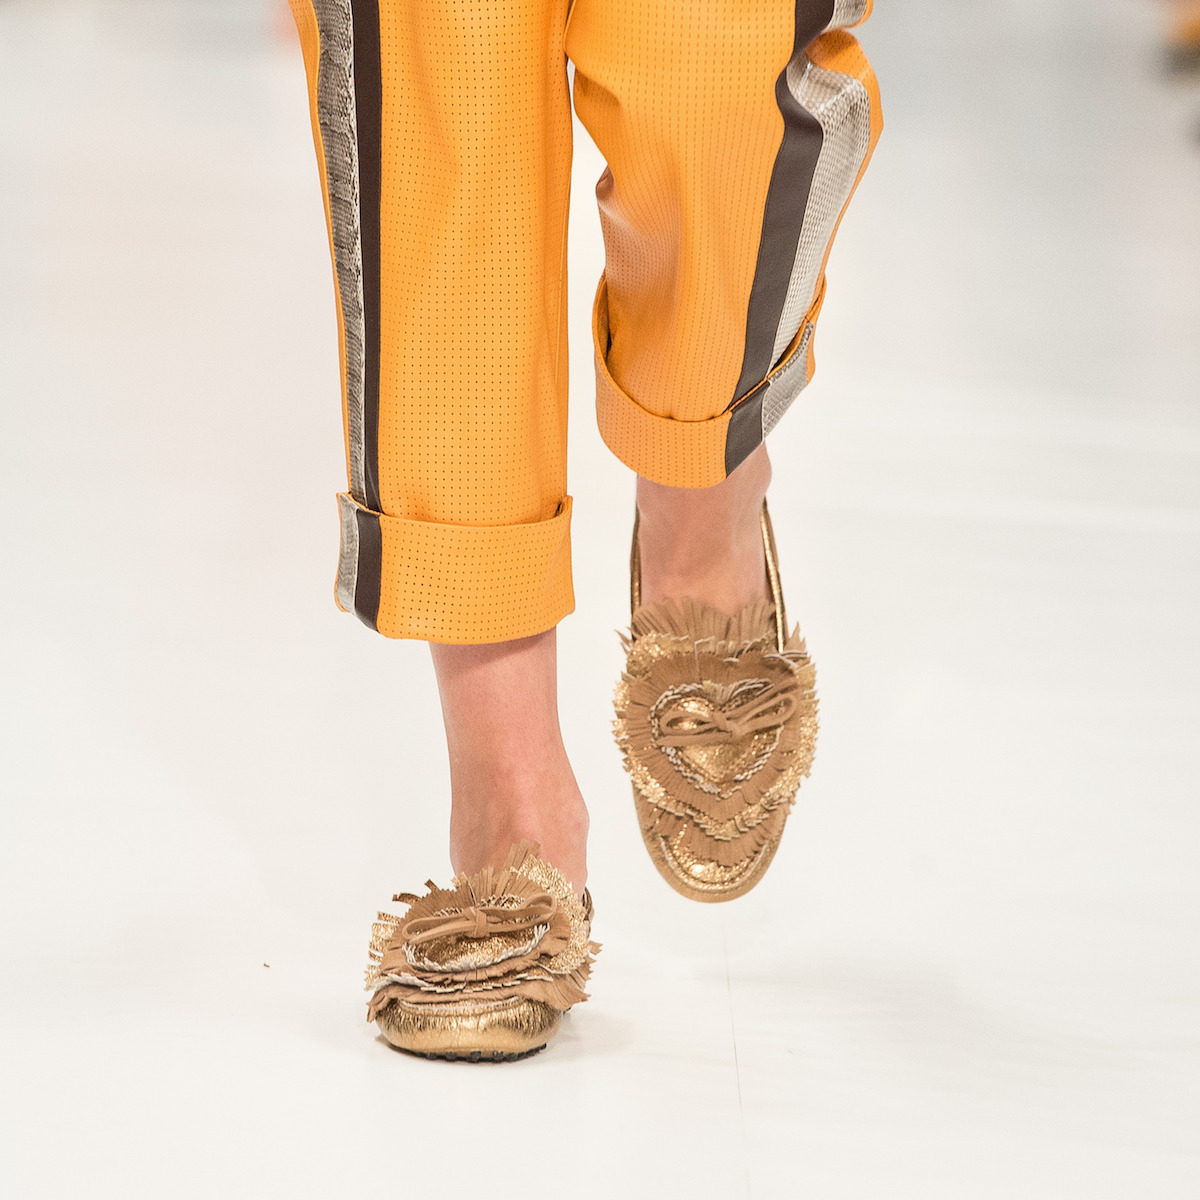 close-up-shoes-3.jpg